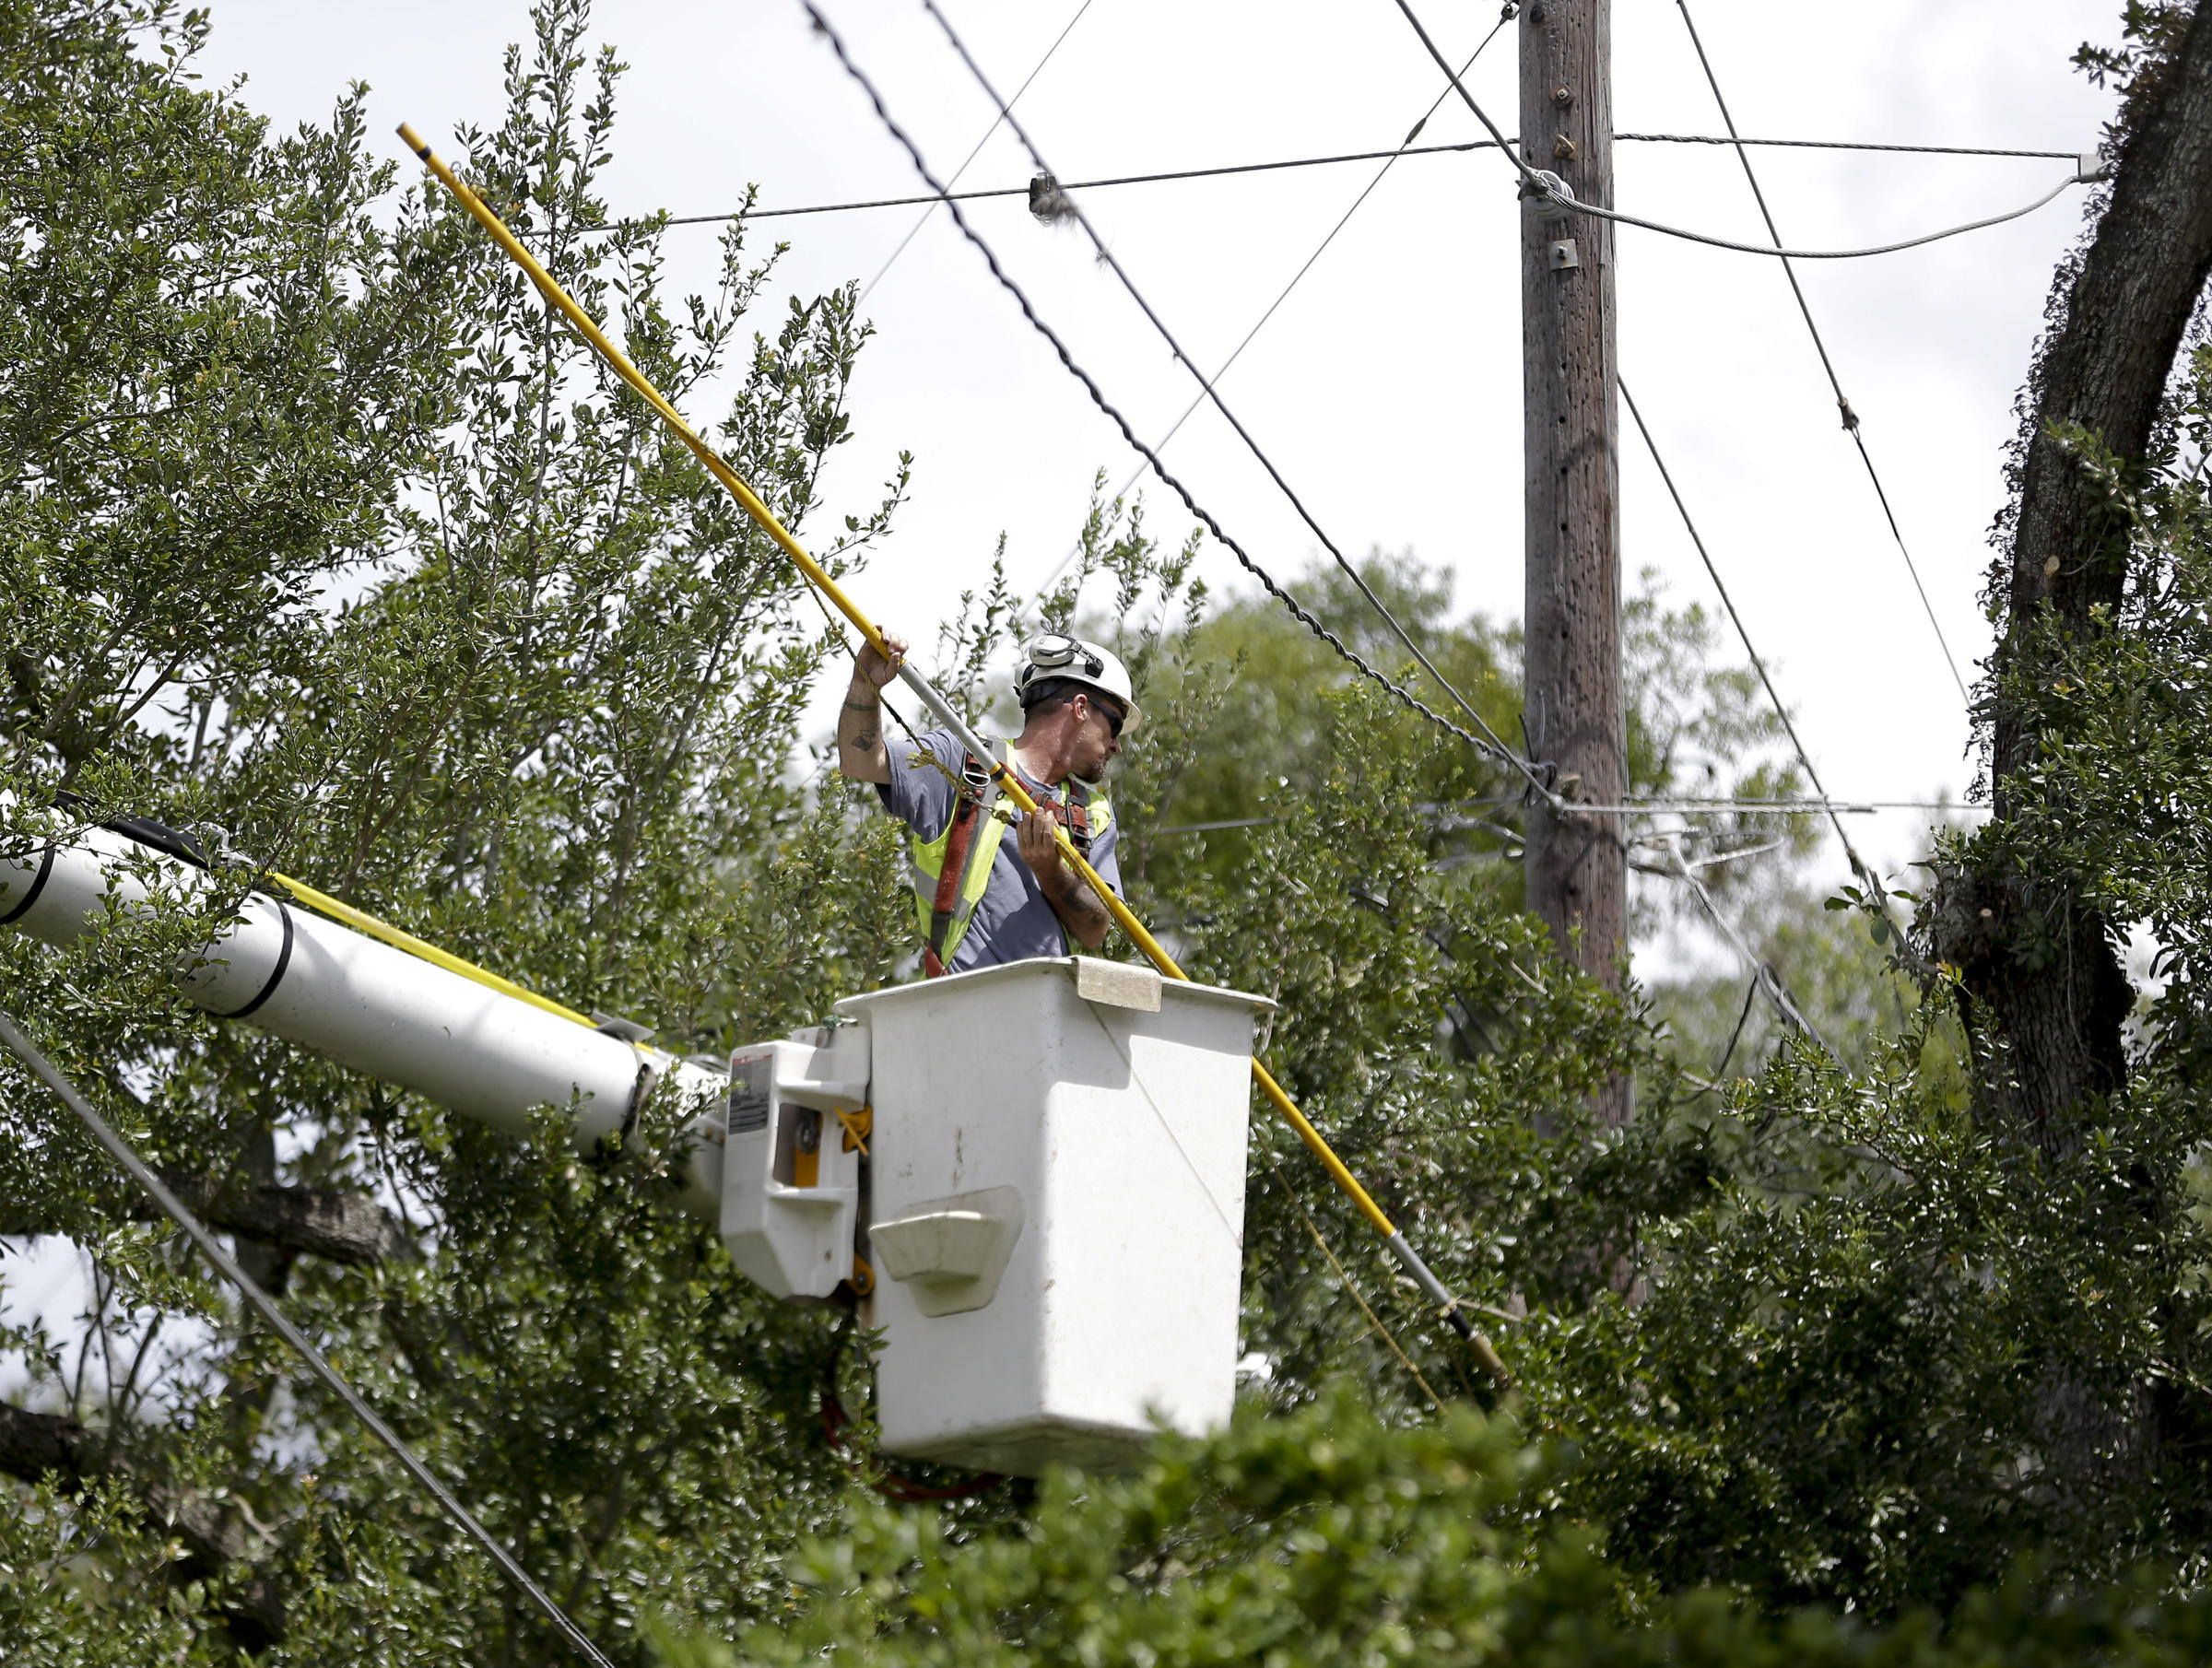 Restoring power to Florida will take 'weeks, not days' in some areas